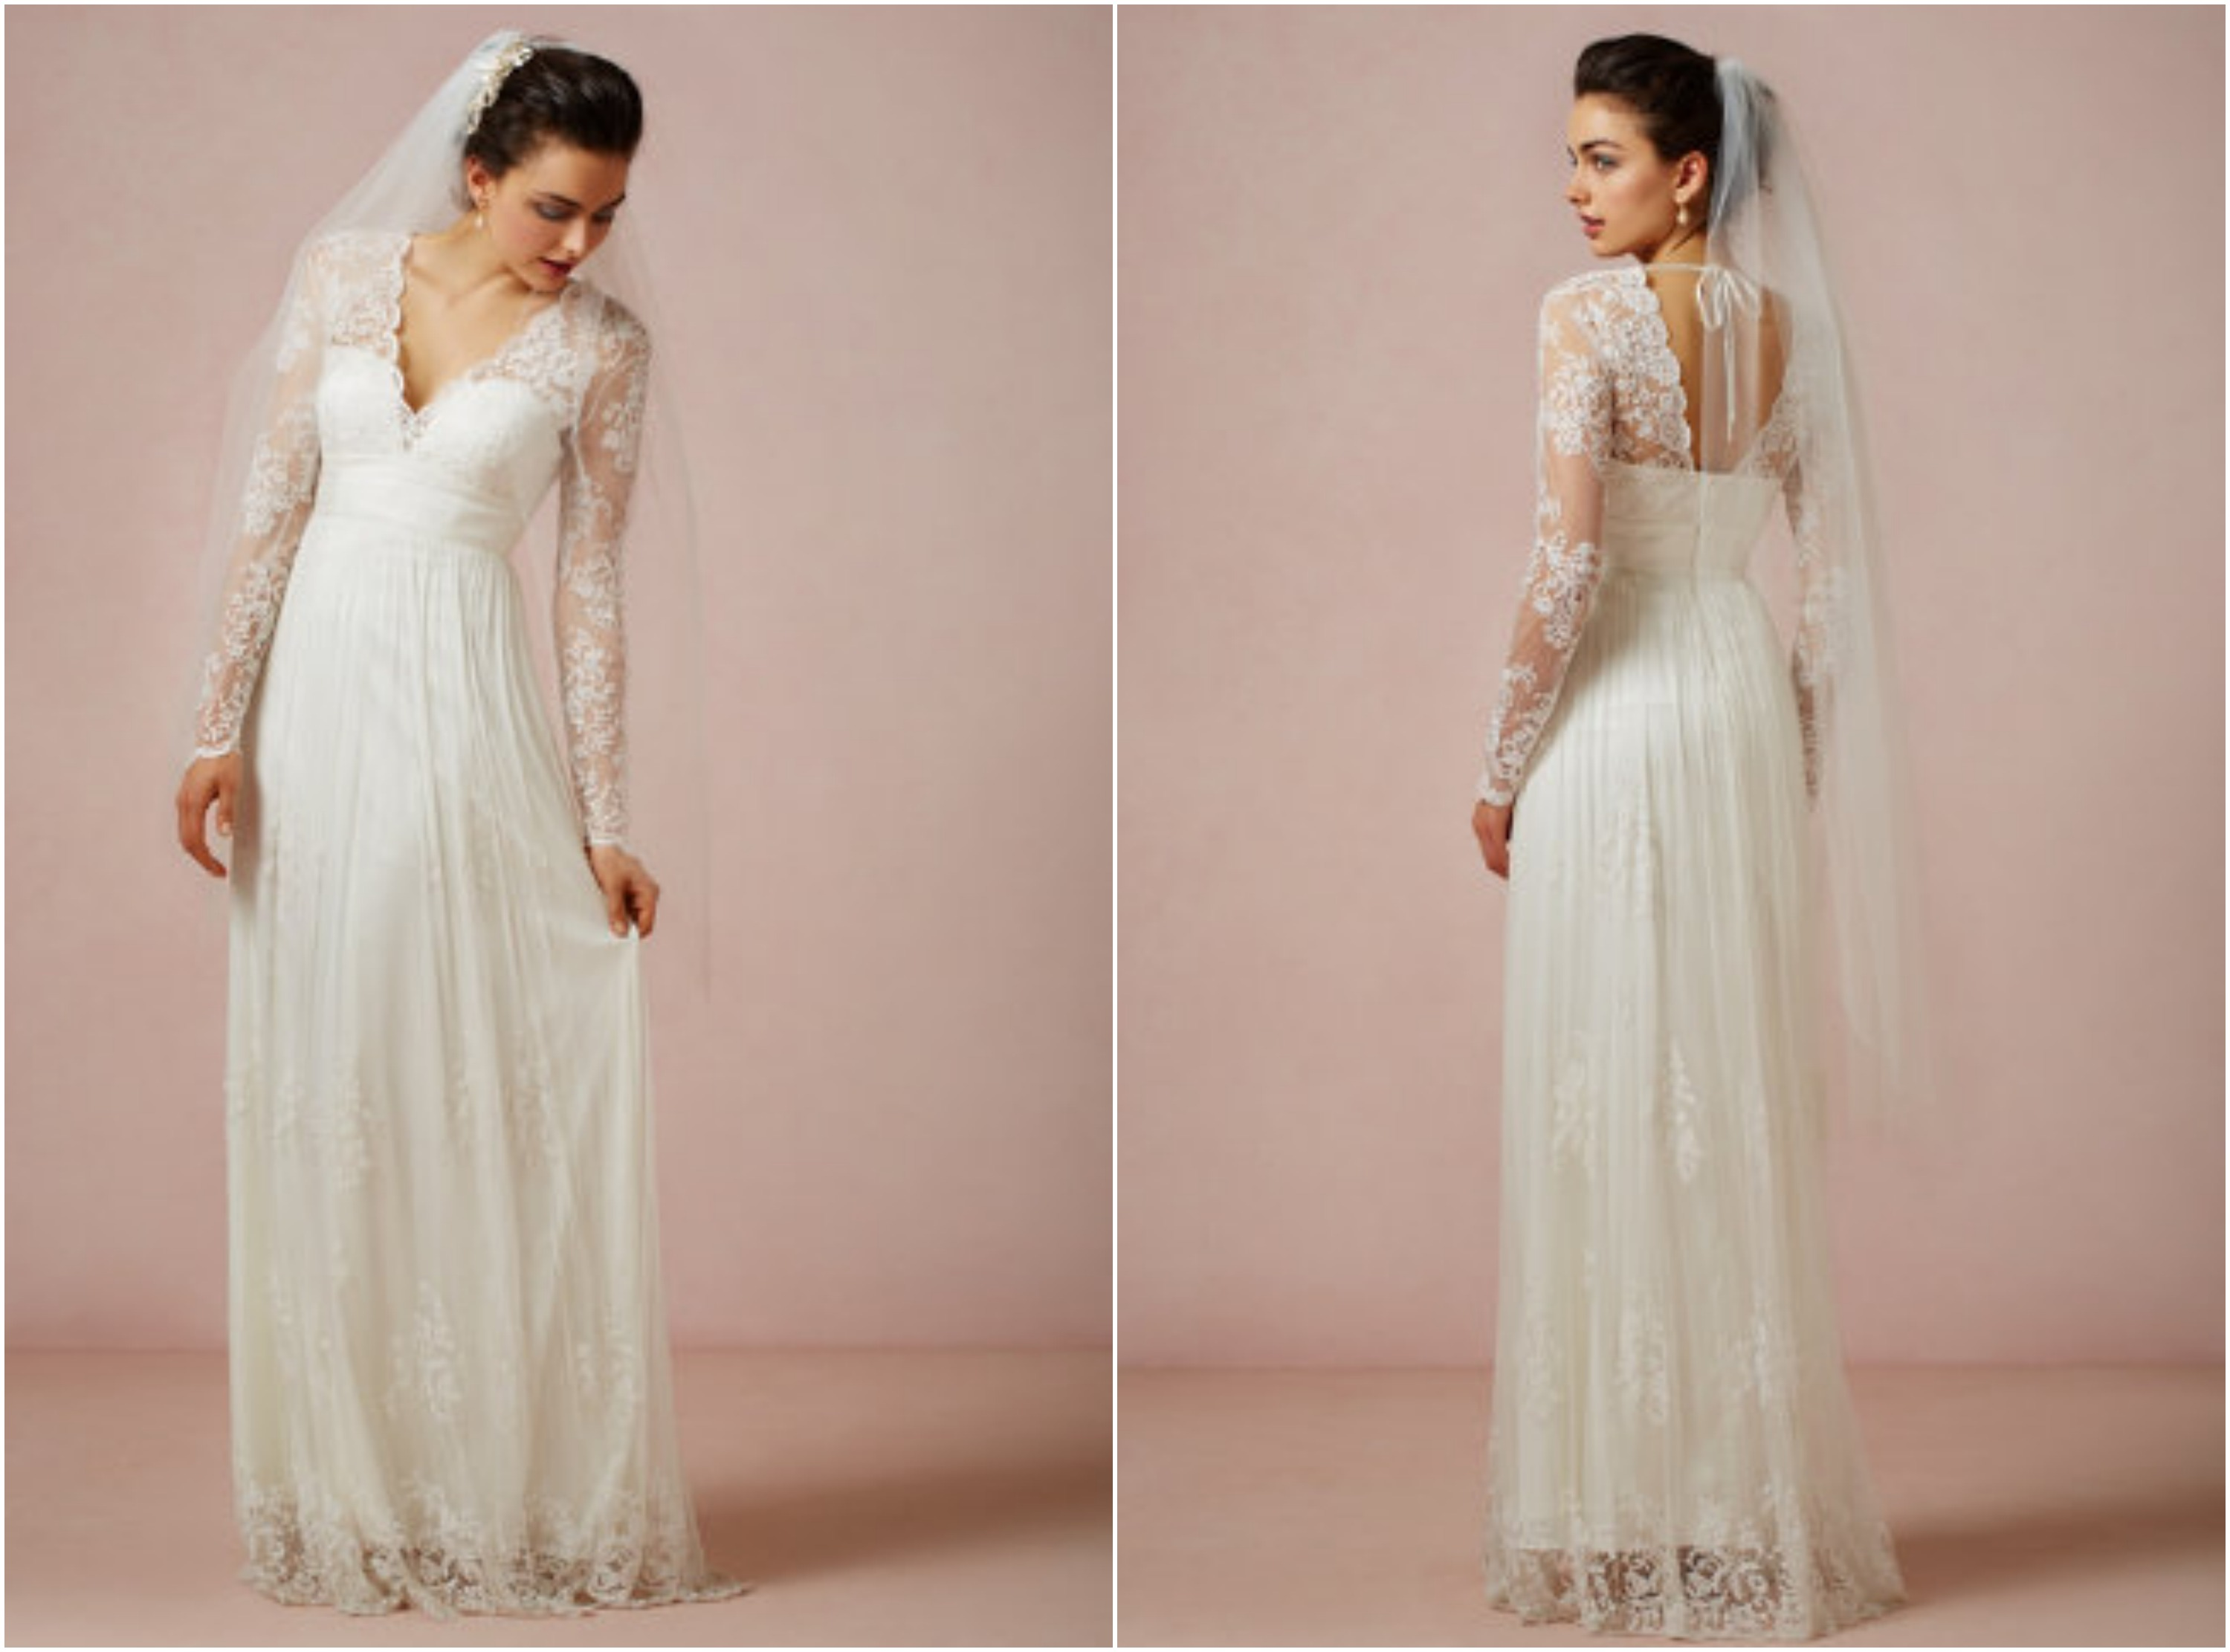 rustic wedding dresses with sleeves country rustic wedding dresses Rustic Wedding Dresses With Sleeves 83